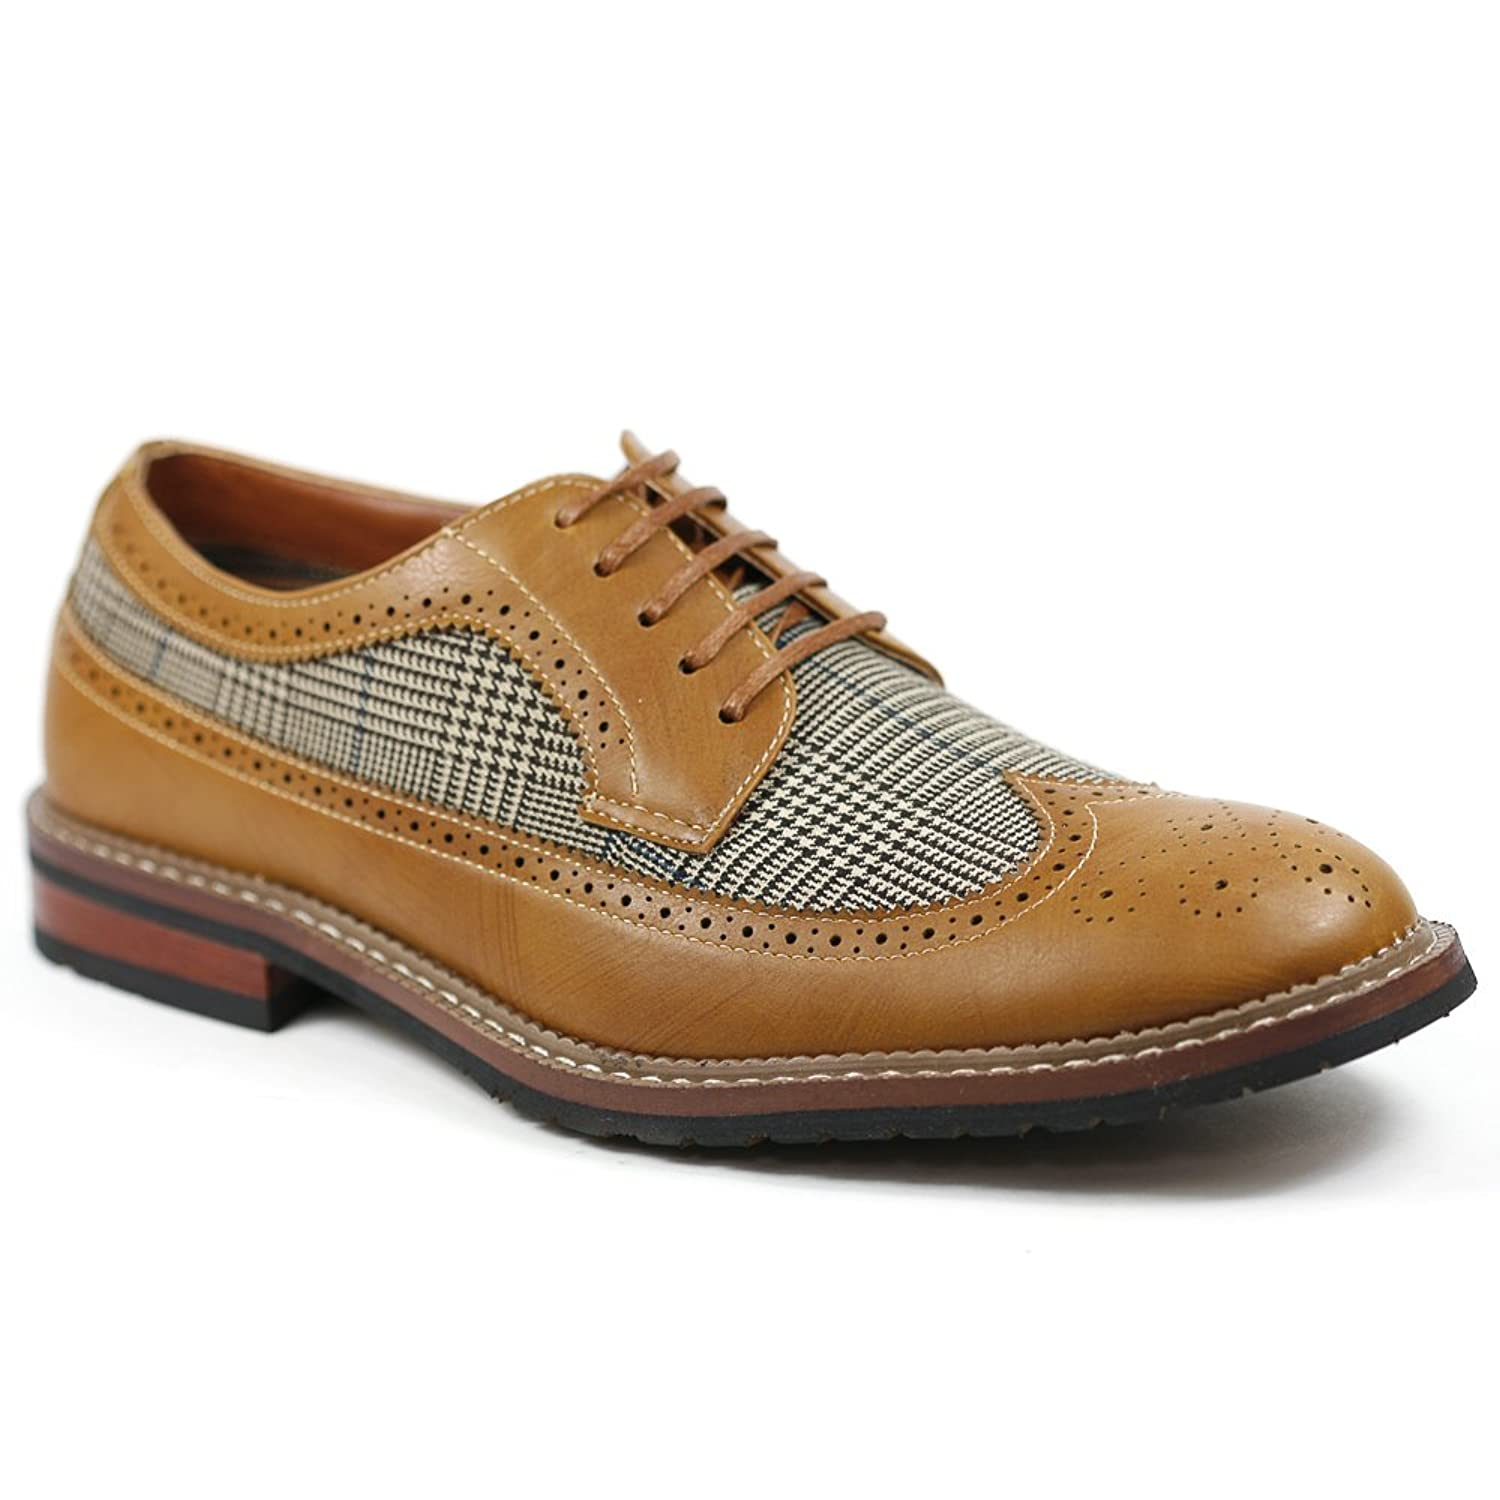 Mens Vintage Style Shoes| Retro Classic Shoes Houndstooth Mens Oxford Dress Classic Shoes $34.99 AT vintagedancer.com